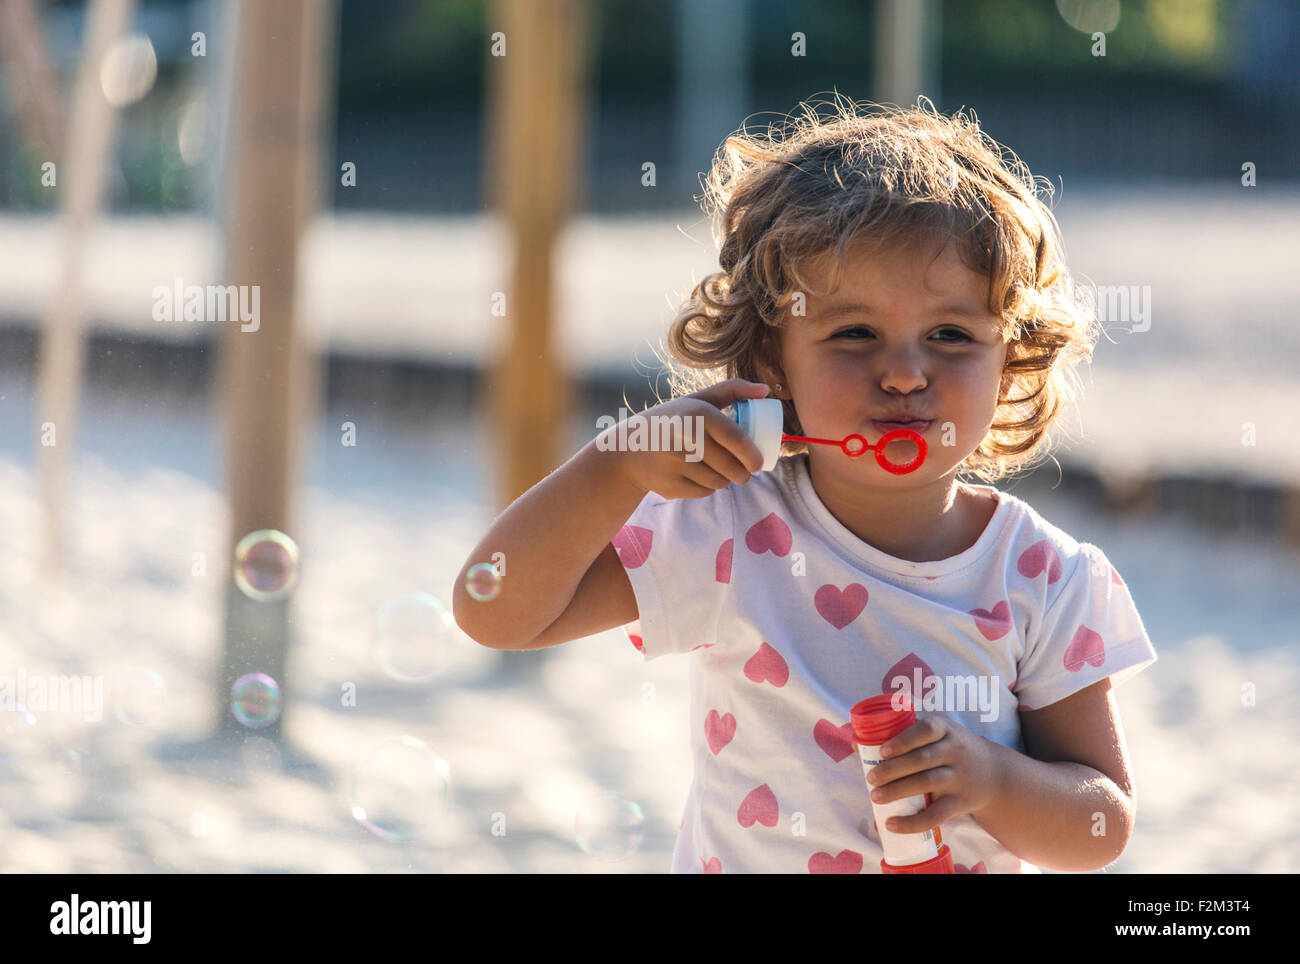 Little girl making soap bubbles at playground - Stock Image